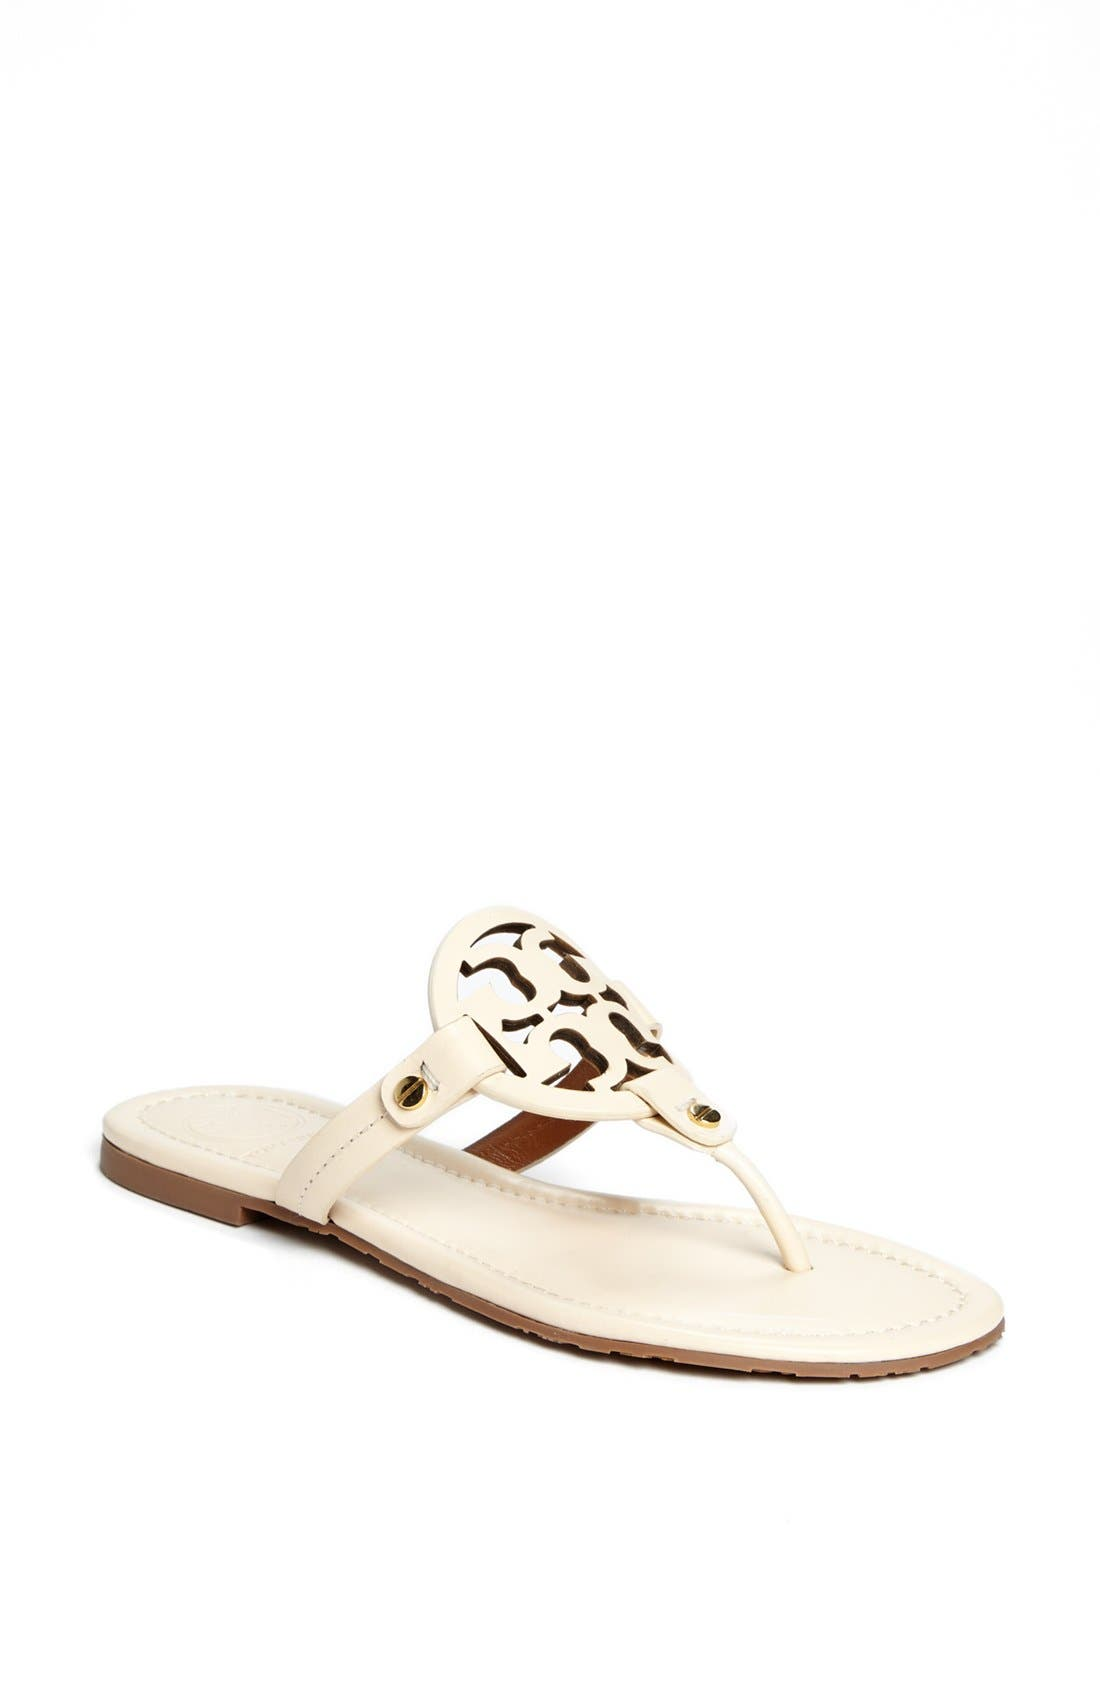 Alternate Image 1 Selected - Tory Burch 'Miller' Thong Sandal